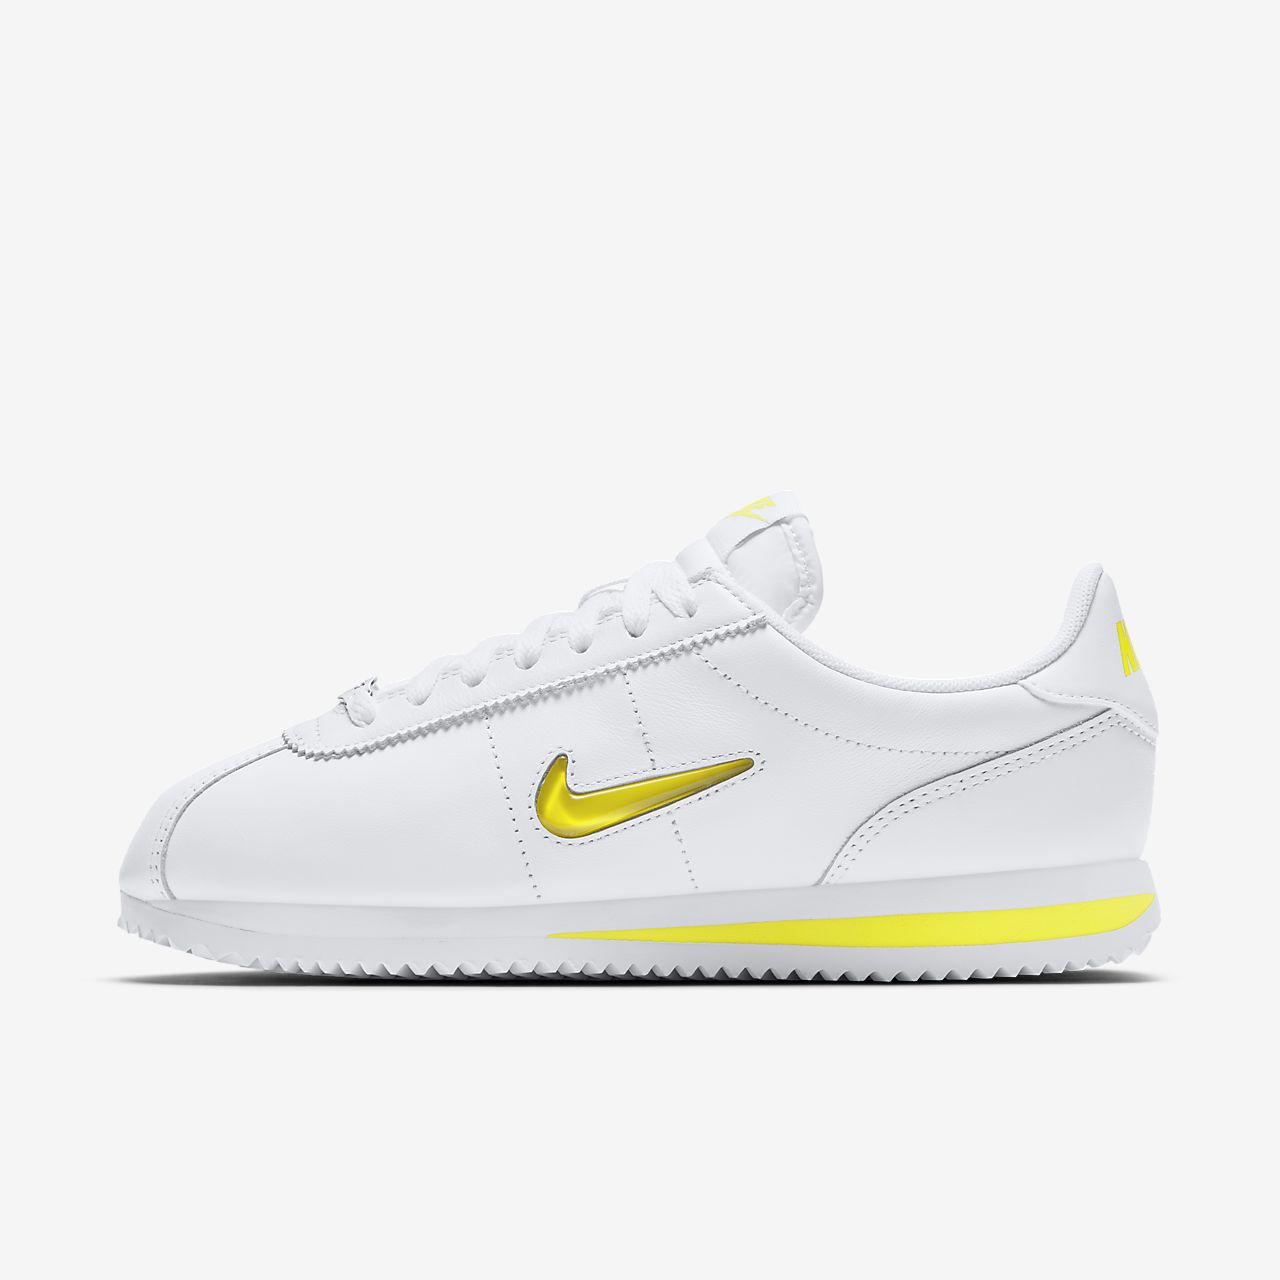 best website f7acc 0e956 ... Nike Cortez Basic Jewel Damenschuh